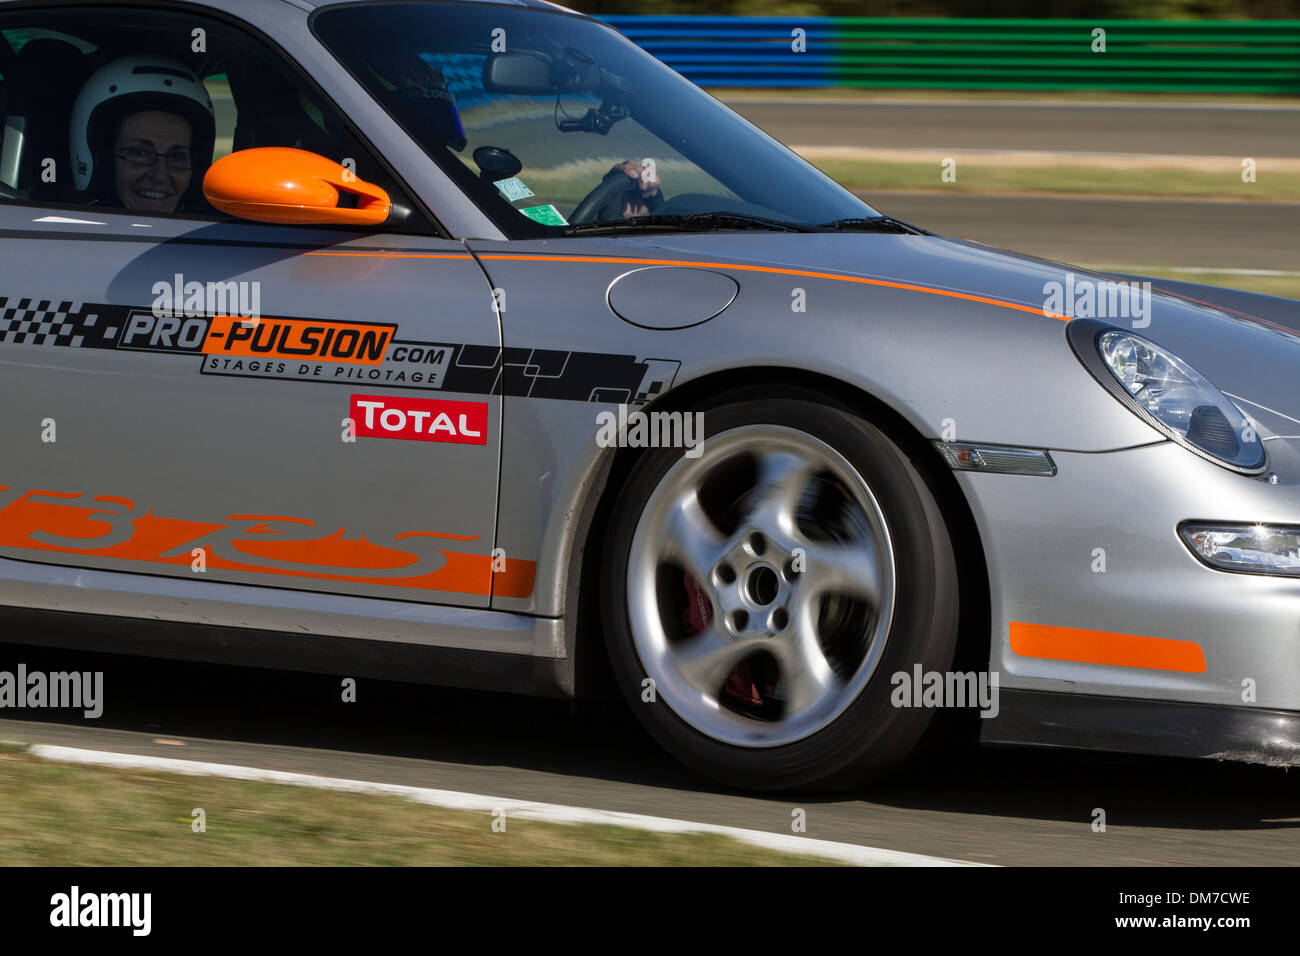 PORSCHE 997 GT3 ON THE TRACK, PRO'PULSION, DRIVING COURSES ON A RACE TRACK, DREUX, EURE-ET-LOIR (28), FRANCE - Stock Image